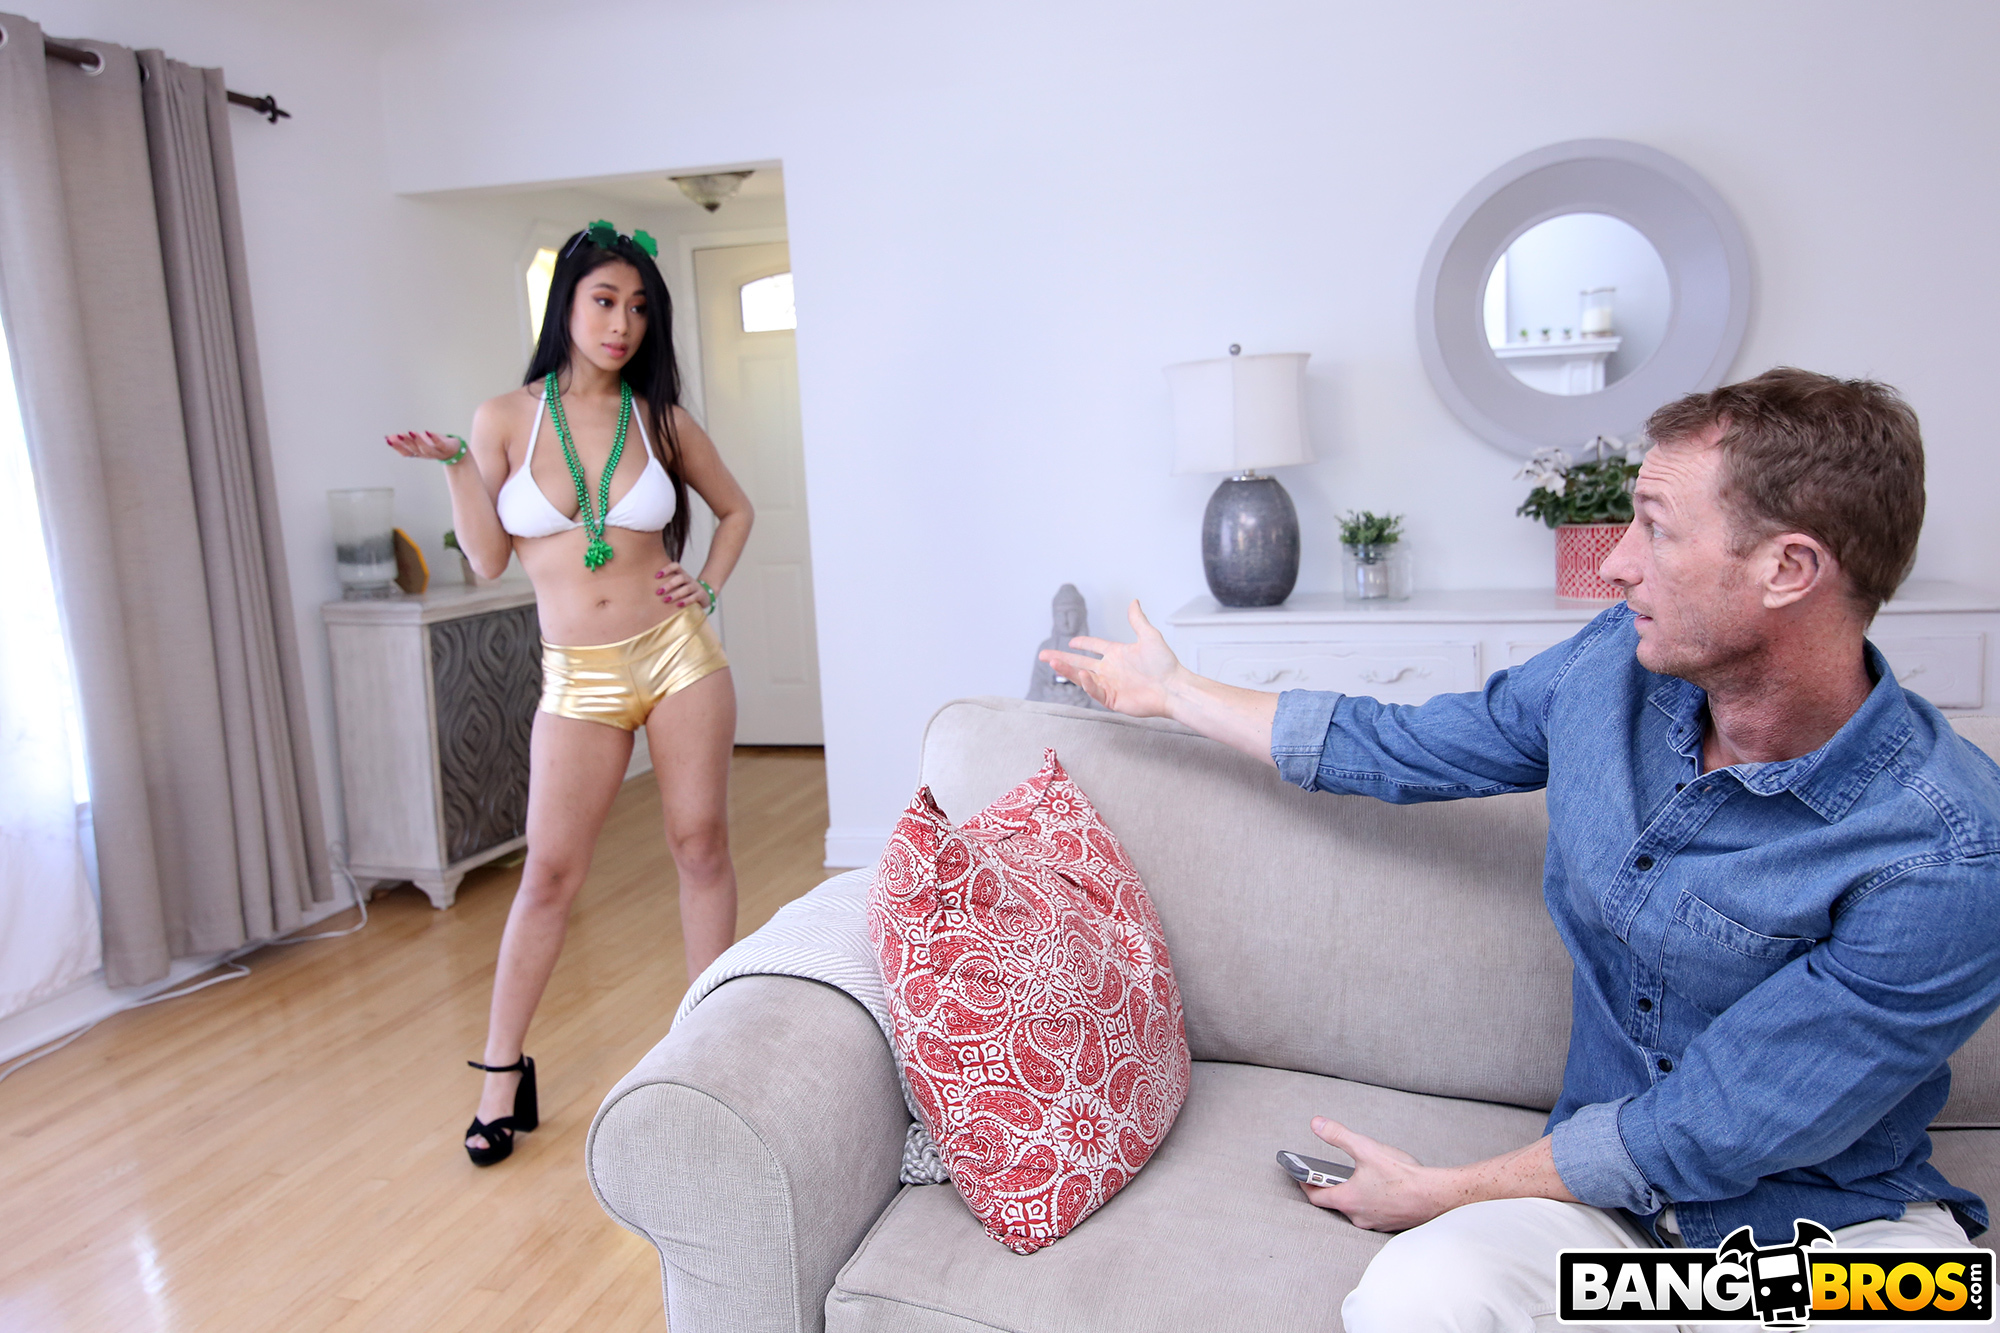 BangBros Accounts Premium Password With Naughtyamerica Mofos 25 Nov